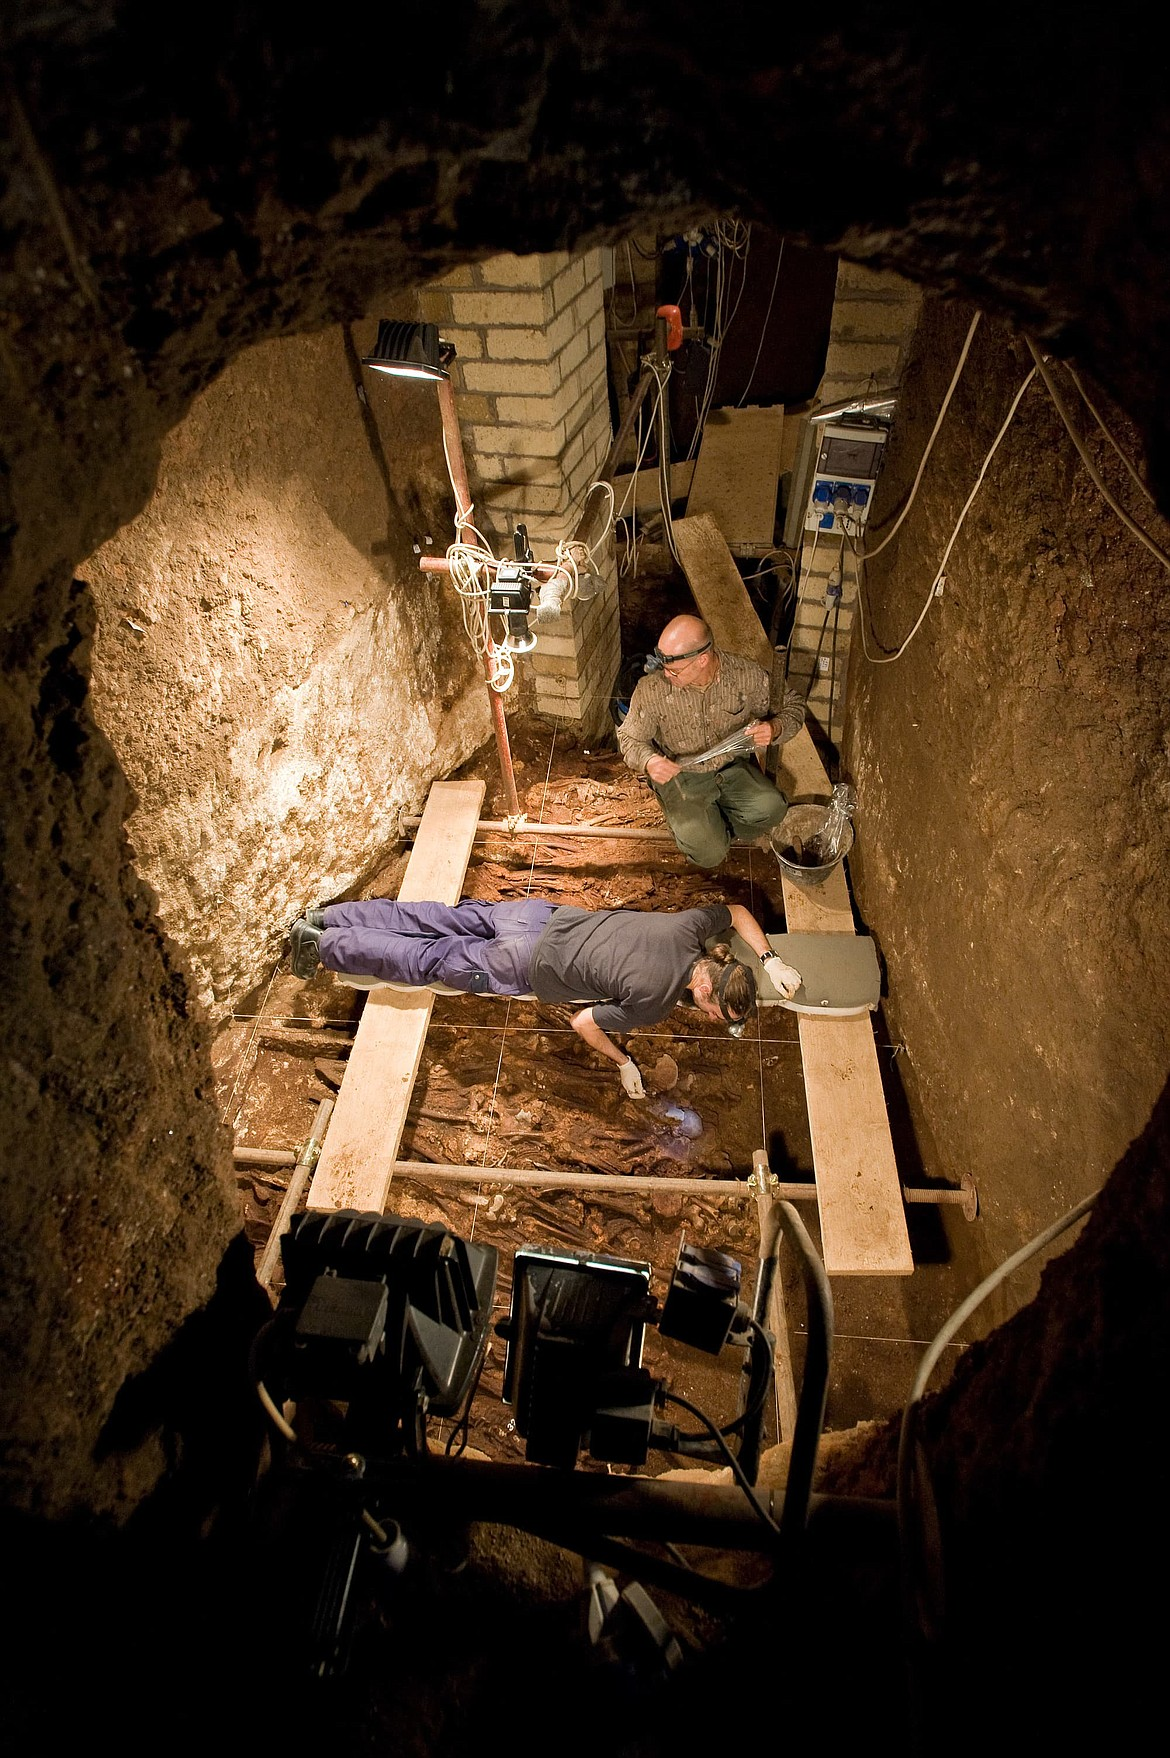 Excavating in the St. Peter and St. Marcellin catacombs beneath the ancient Via Labicana where 20,000 to 25,000 bodies were buried in the 4th century A.D. (2008).